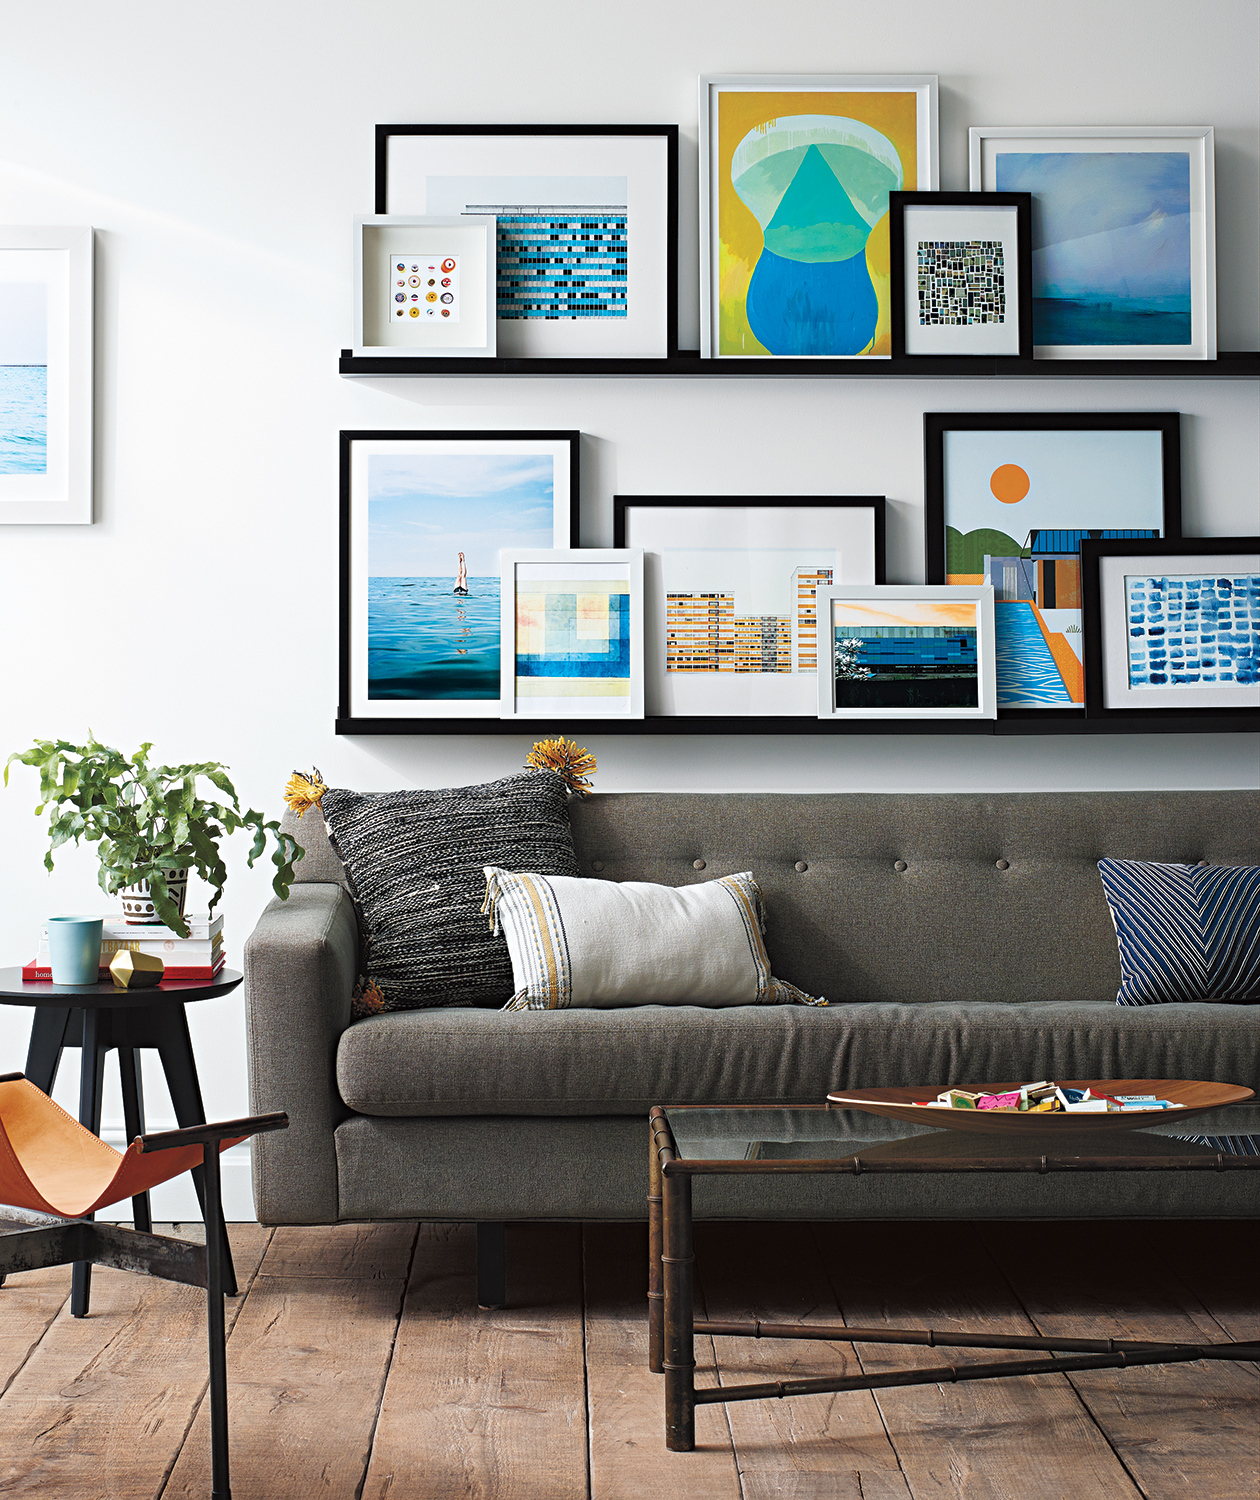 Gallery Wall: Leaning on Ledges